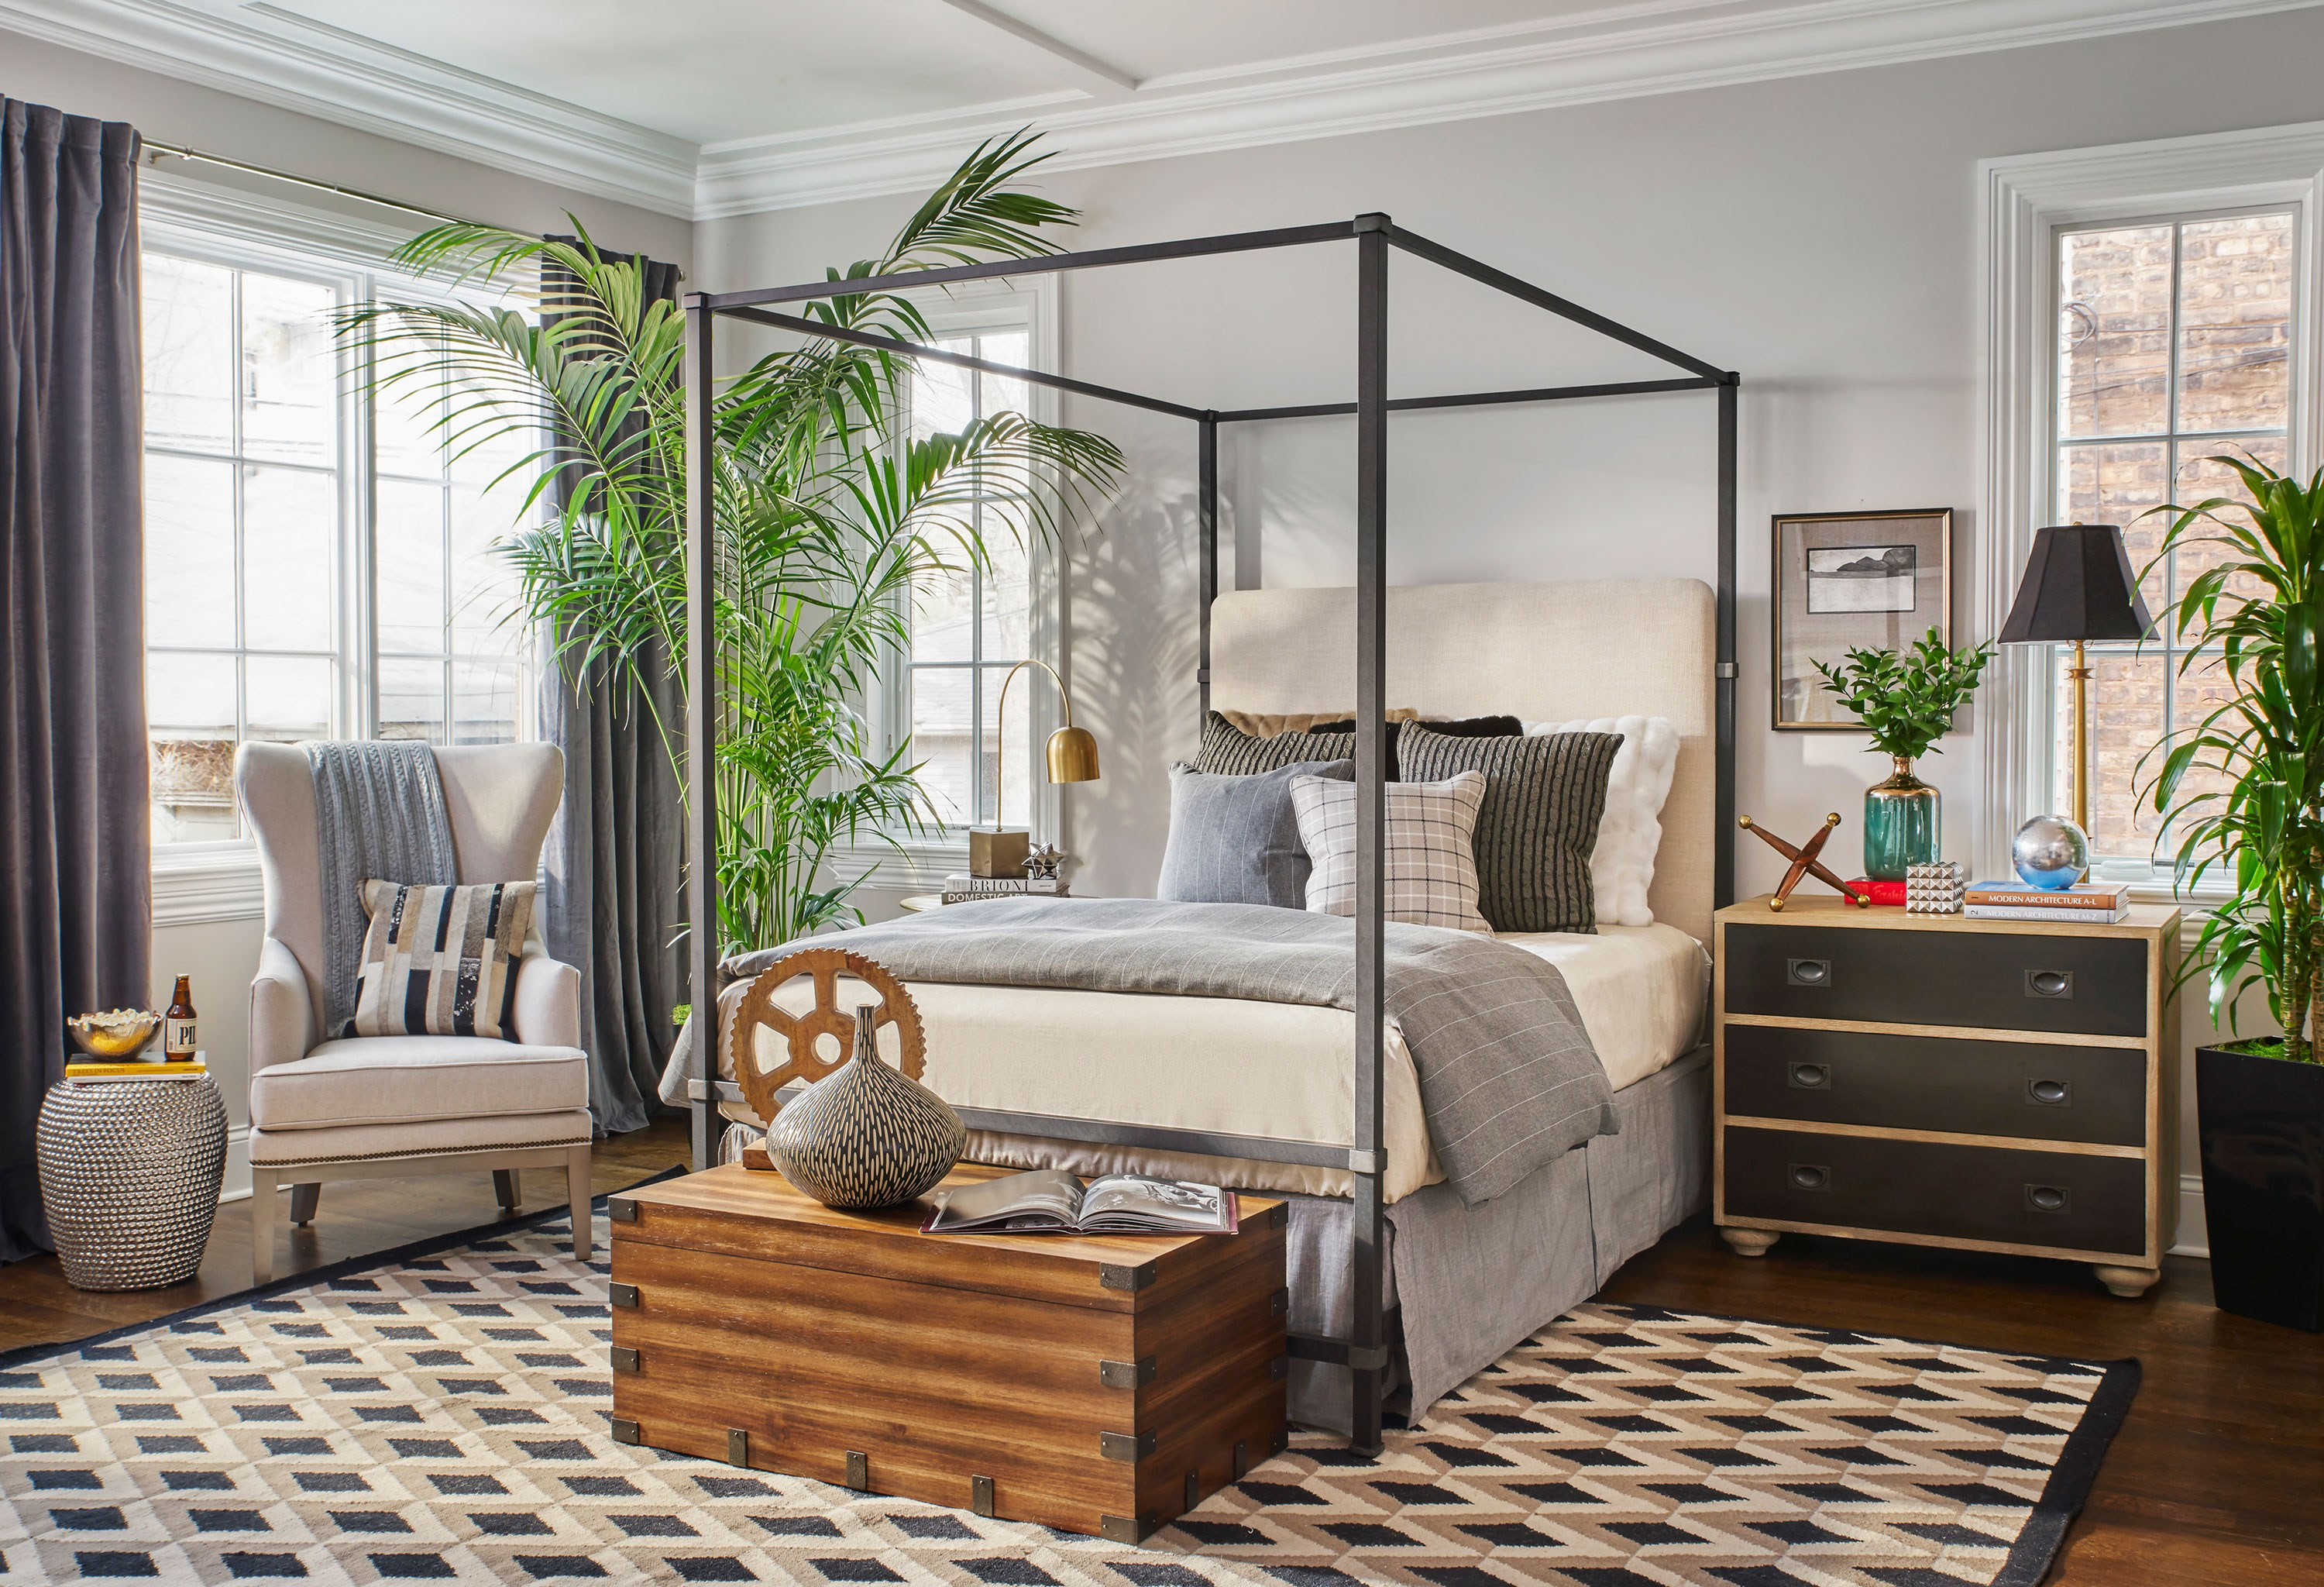 """Matching furniture sets can be boring and unimaginative. I intentionally mismatch pieces for visual diversity. In this bedroom, I balanced a heavy bedside table with a tall tree and accent chair for symmetry. The high ceilings were prone to shrink most beds, but we chose a tall iron canopy bed that fit the space perfectly."""